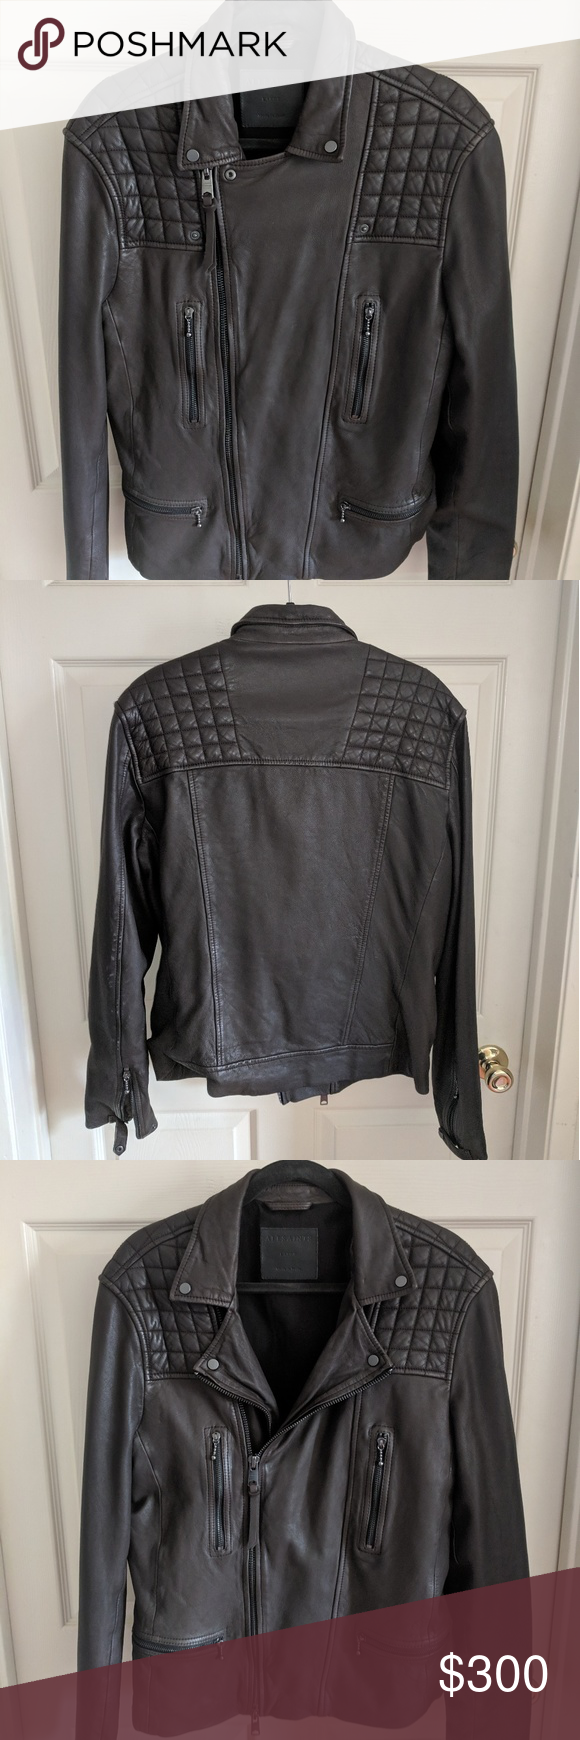 All Saints Leather jacket NWT (With images) All saints